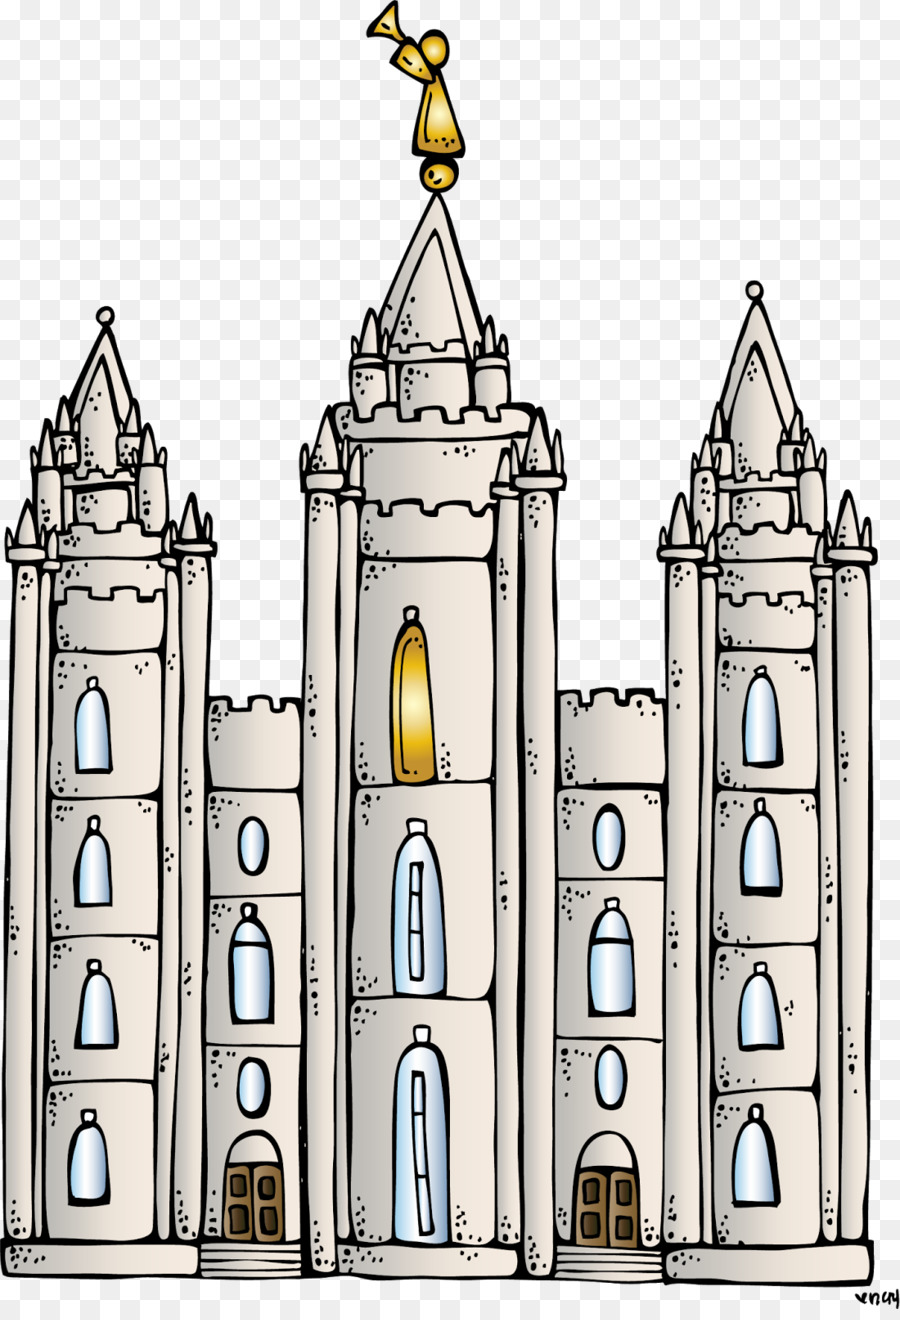 salt lake temple lds conference center lds general conference clip rh kisspng com lds temple clipart images lds temple silhouette clipart